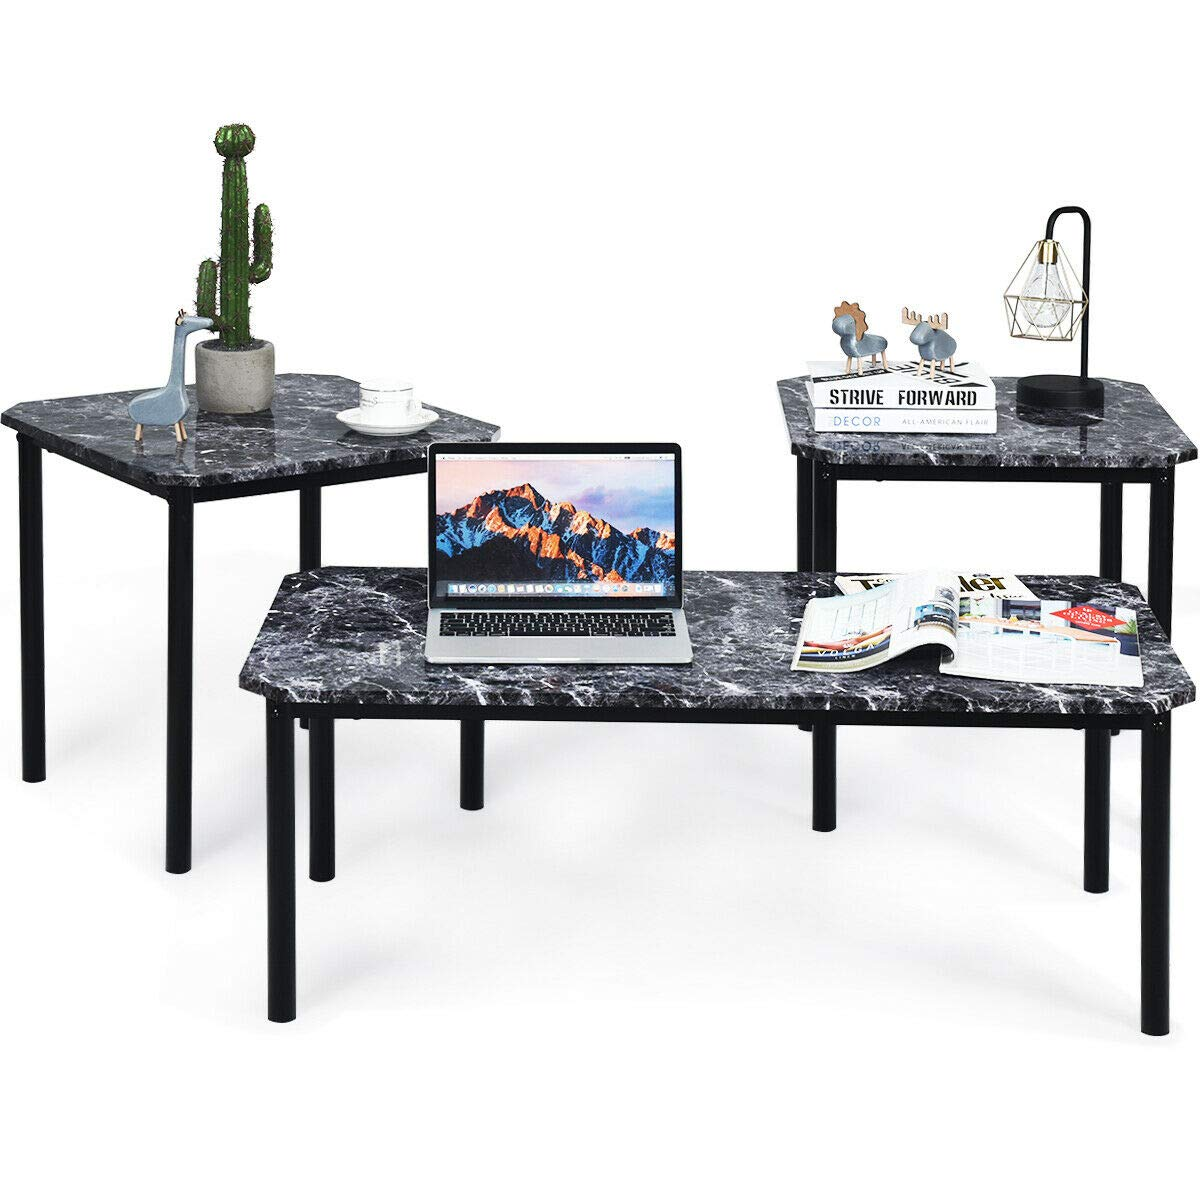 Tangkula 3 PC Coffee Table Set, Modern Faux Marble-Look Top End Table Set, Home Living Room Furniture Indoor & Outdoor Décor Coffee Table Set, End Table Set by Tangkula